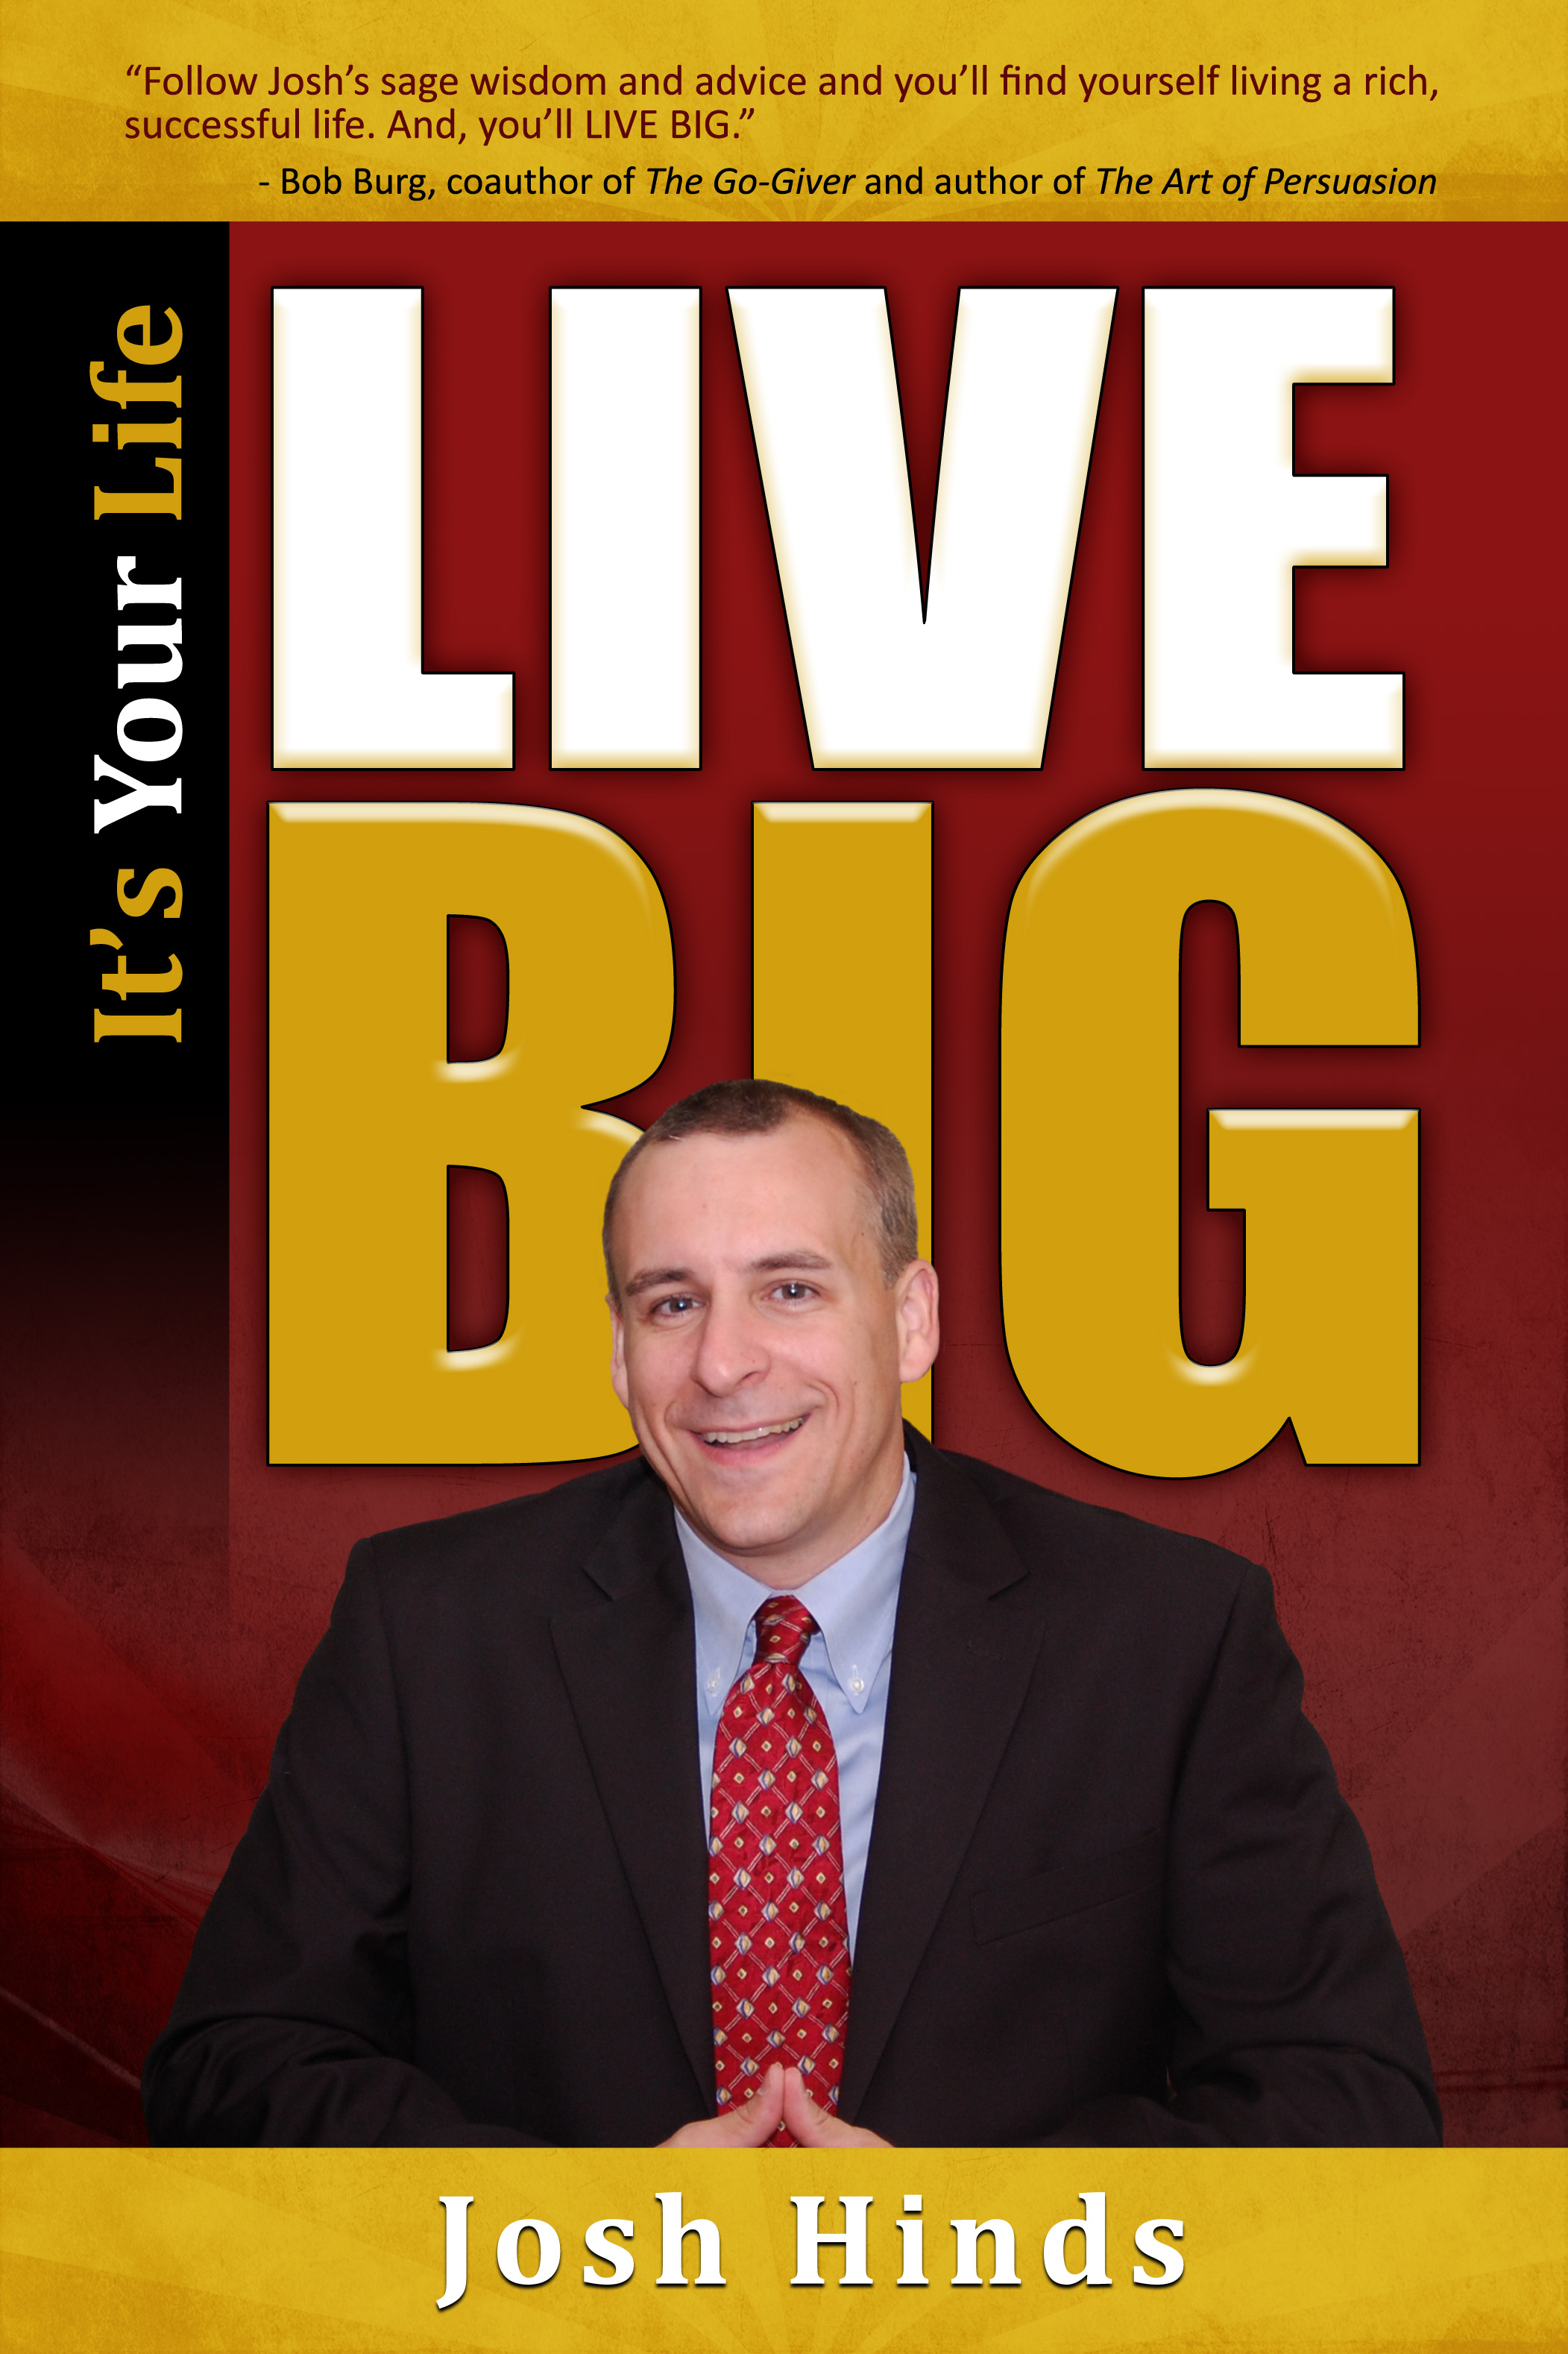 It's Your Life, Live BIG - By josh hinds